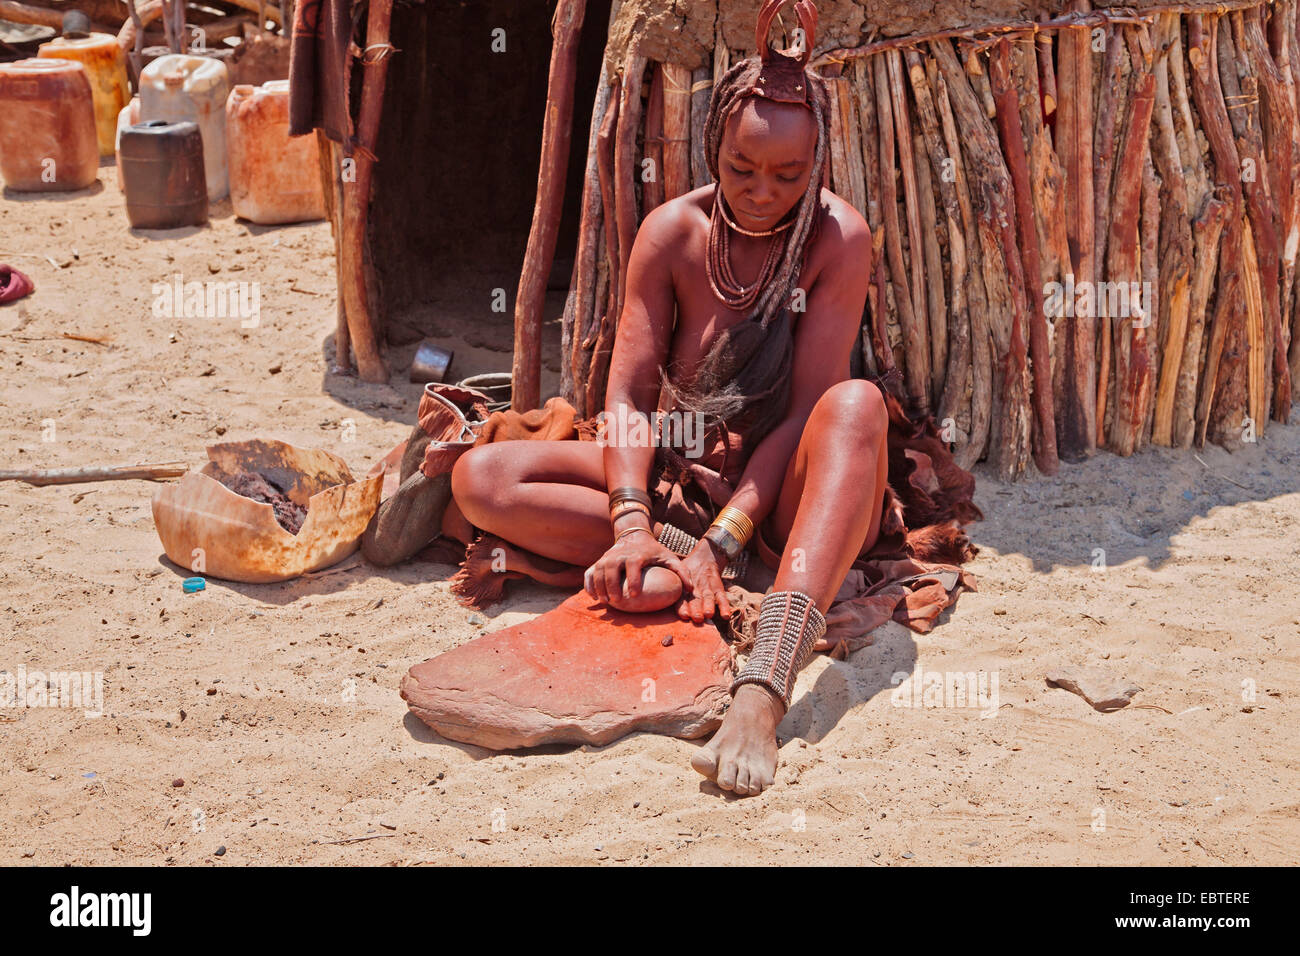 himba woman sitting in front of her hut and grinding up ocher, Namibia - Stock Image